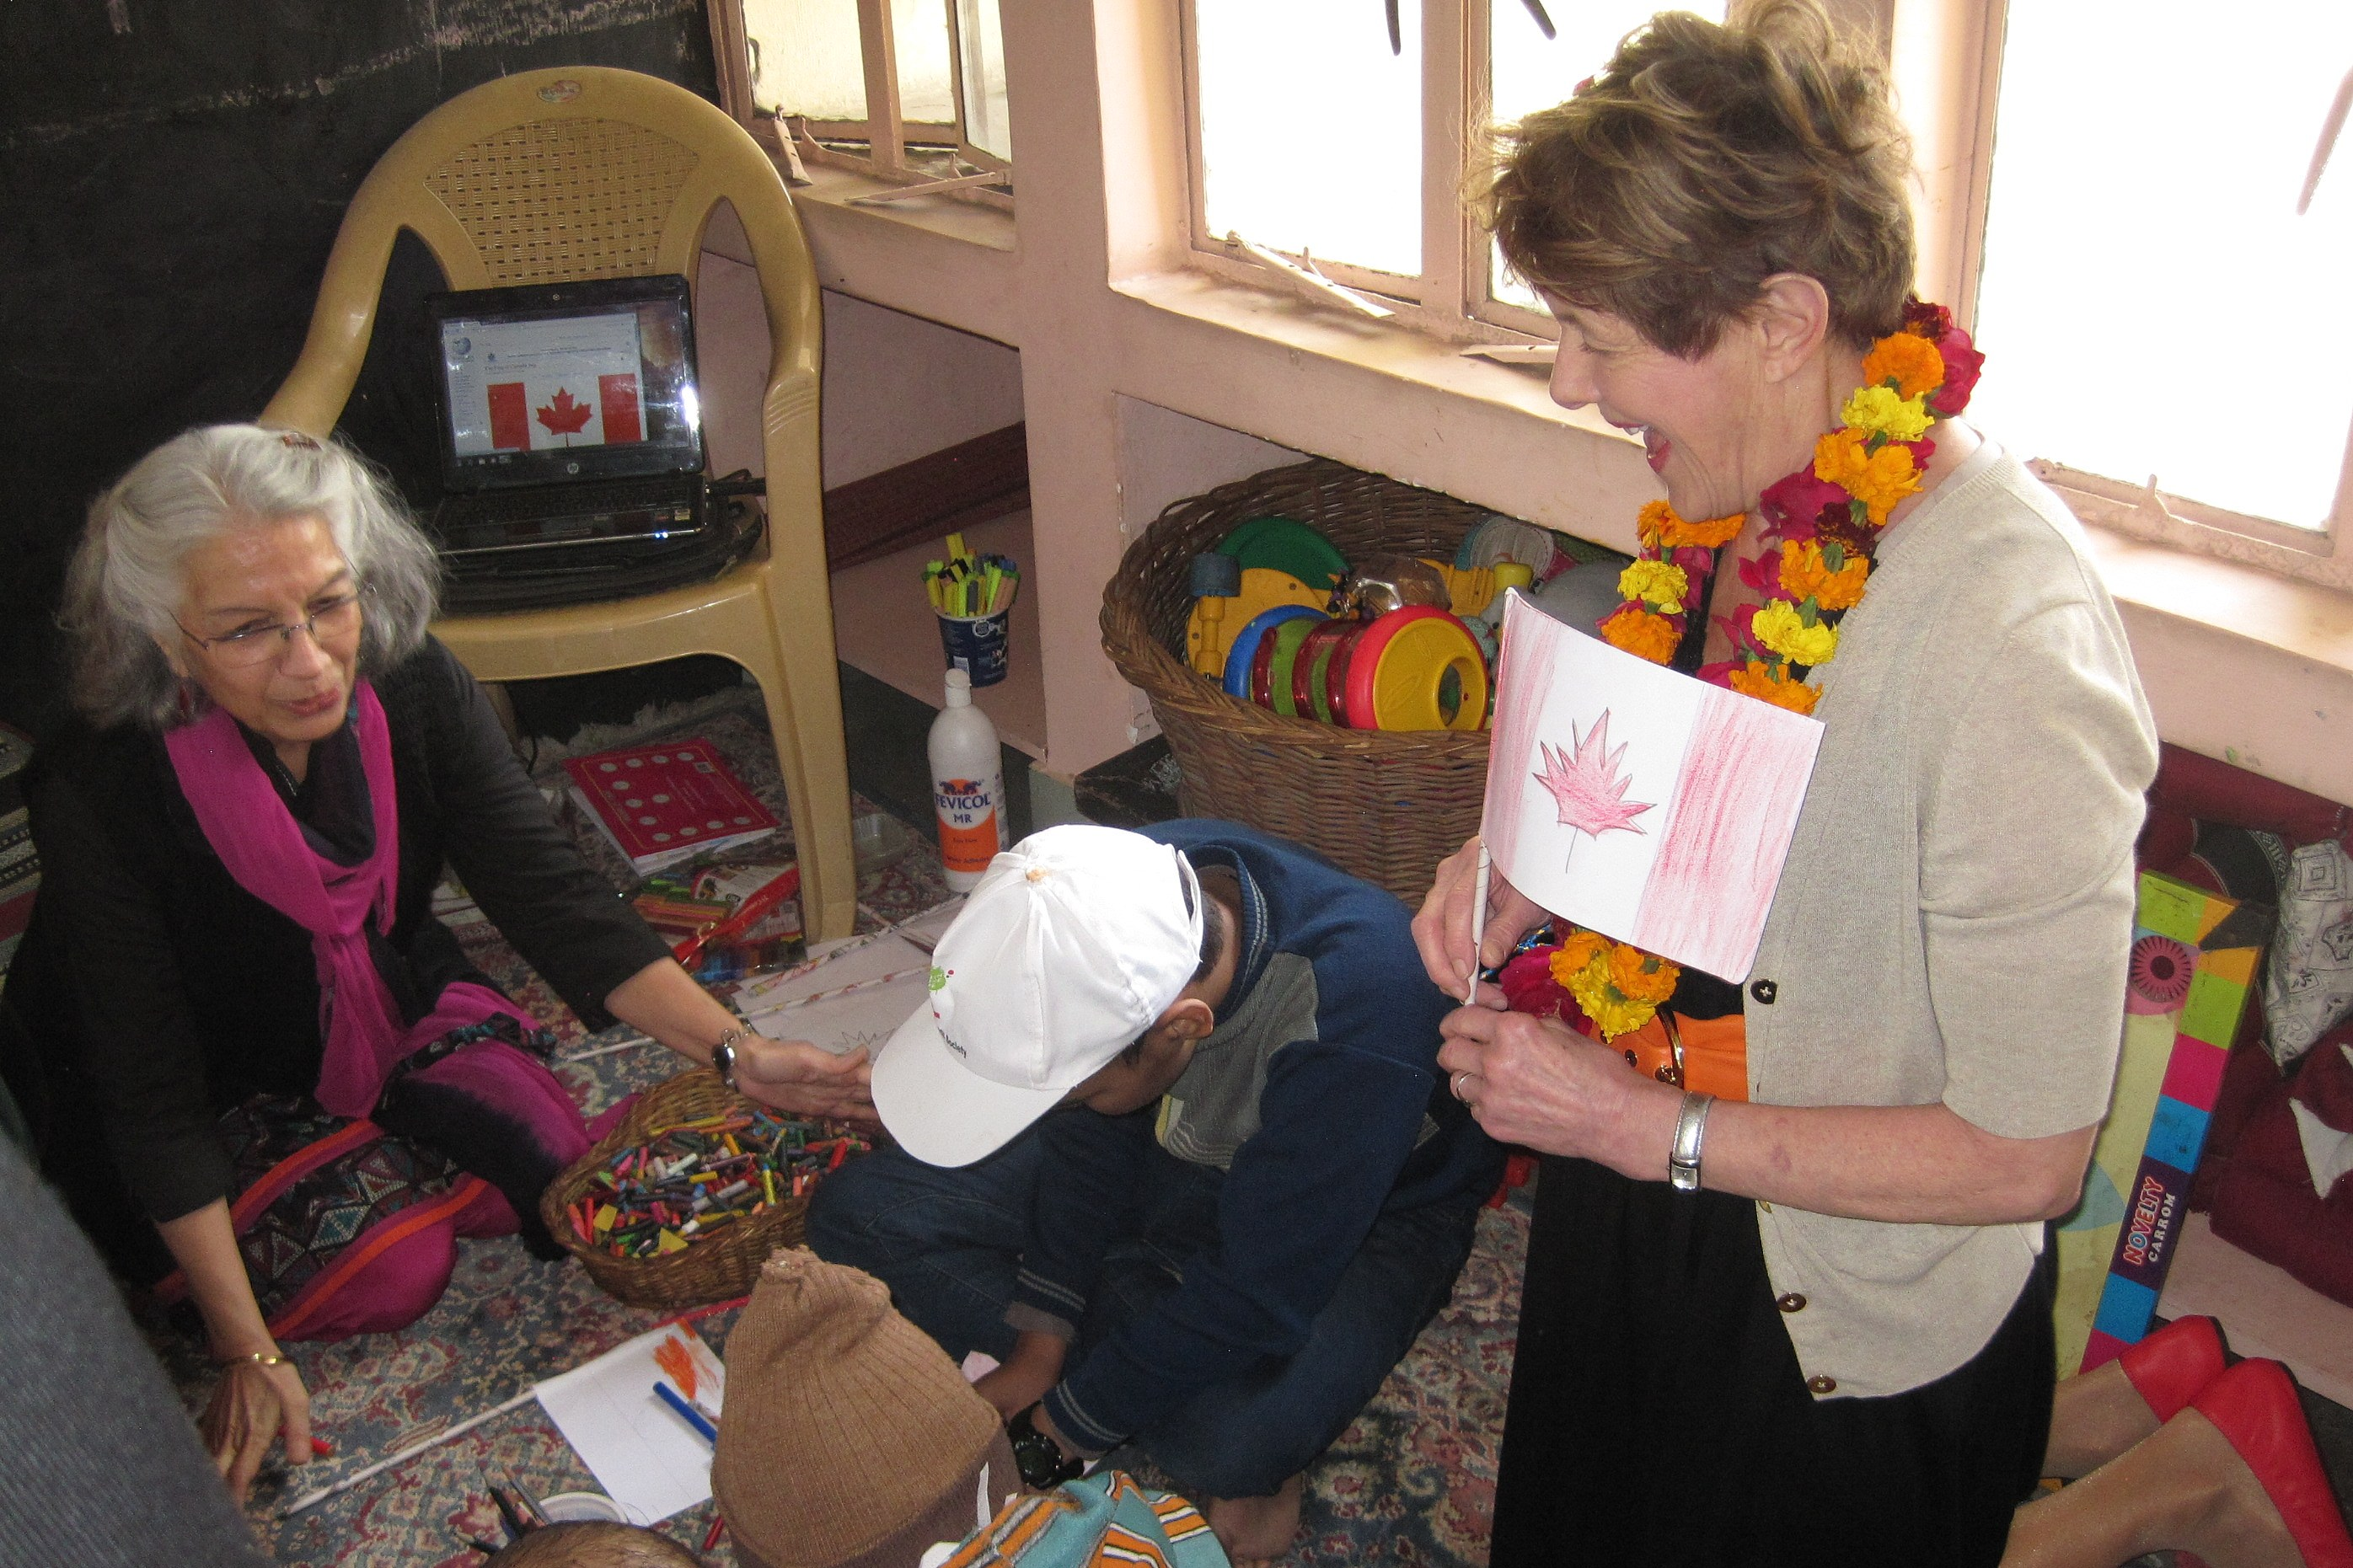 Her Excellency visited CanSupport, a daycare program for children and teenagers diagnosed with cancer.